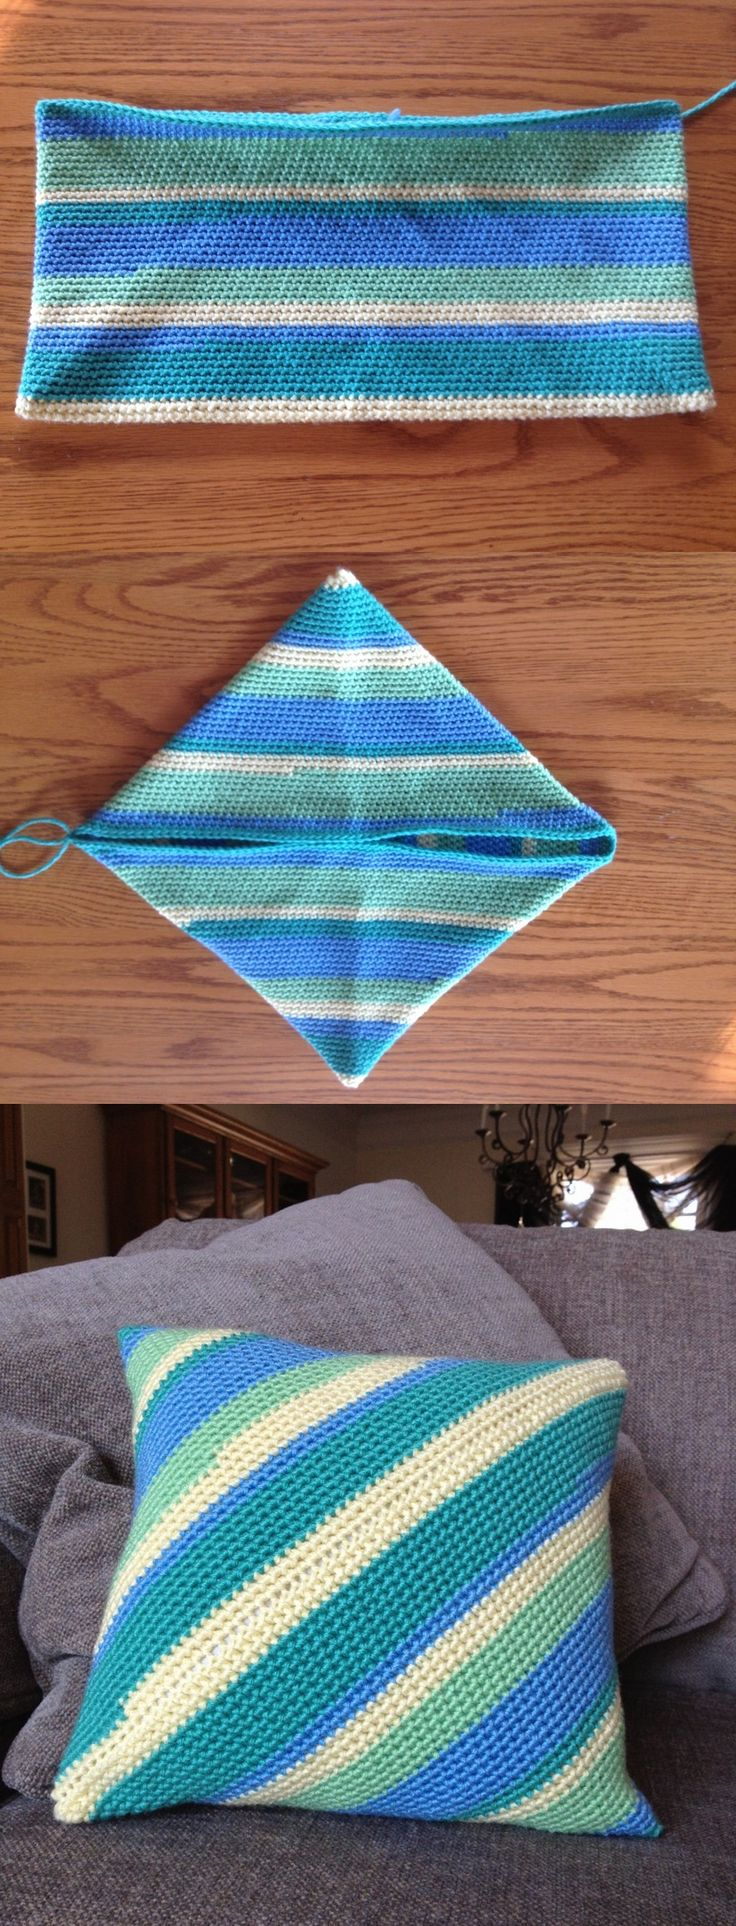 "Potholder pillow, free pattern ~ This is the same pattern used for making the classic potholder - very easy & fast.  12"" pillow uses about 7 oz yarn, hook size 'H', worked in all SC.  Set-up is actually crocheting in the round.  Keep going until, when folded diagonally (2nd pic), both sides meet.  Stuff with a pre-made pillow form & slip stitch closed.  #crochet"